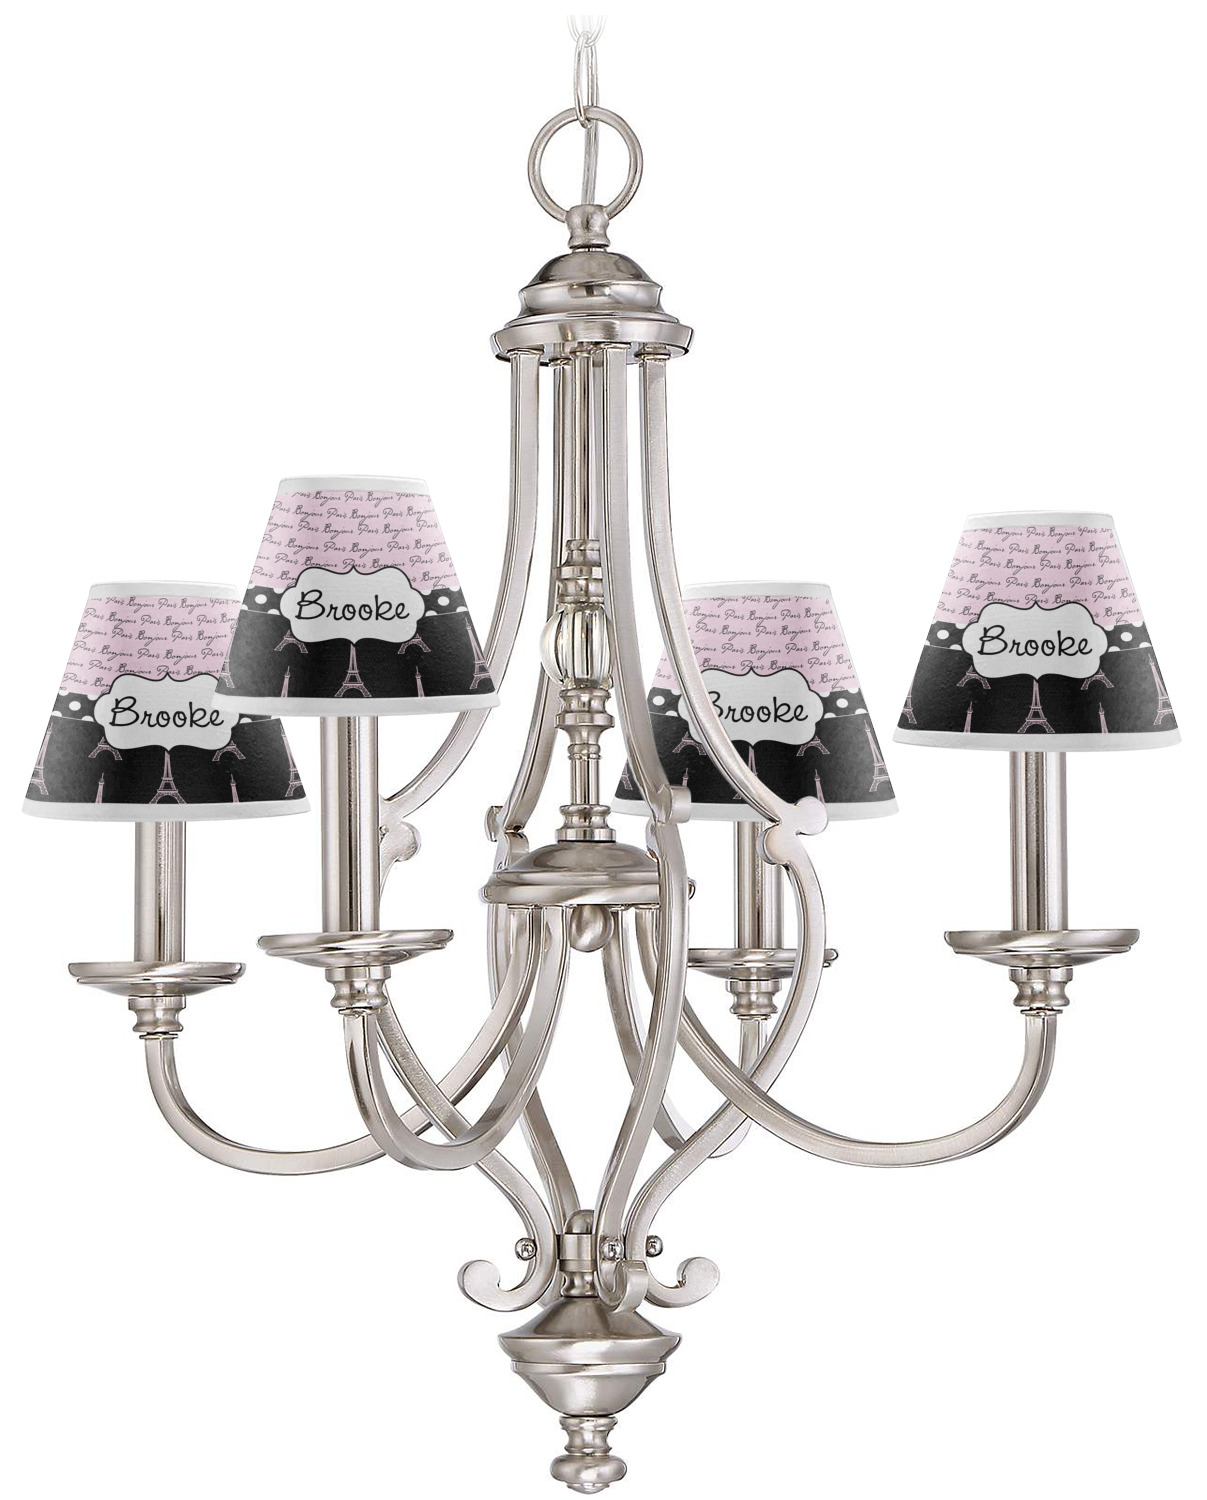 ... Paris Bonjour And Eiffel Tower Small Lamp   Chandelier Shade ...